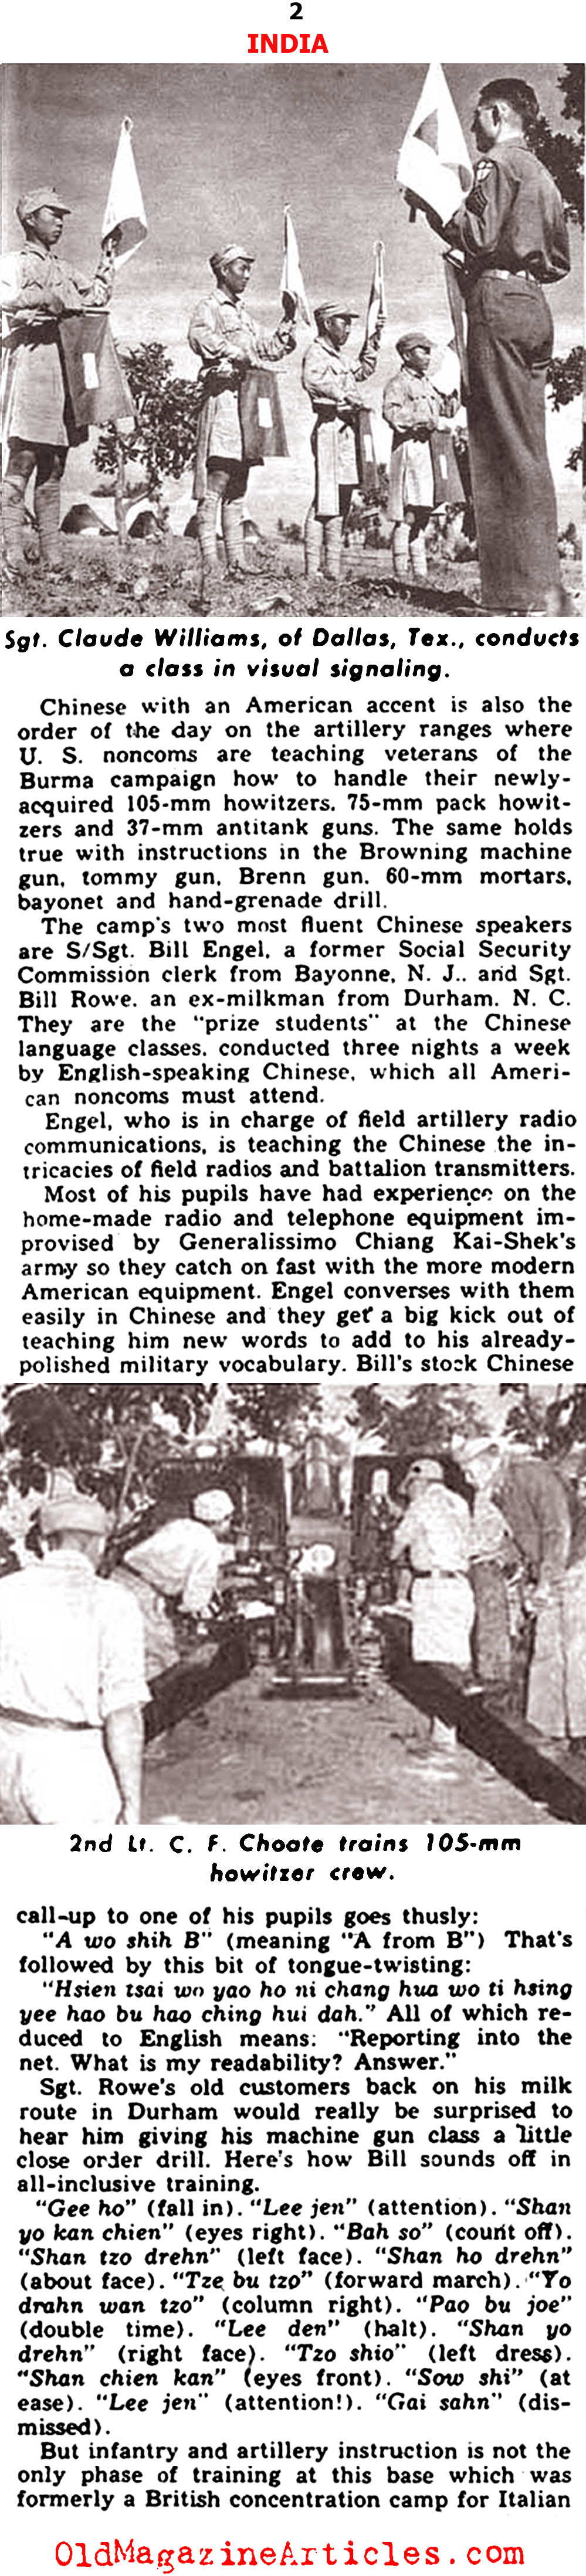 Nationalist Chinese Trained by U.S. Army (Yank, 1943)